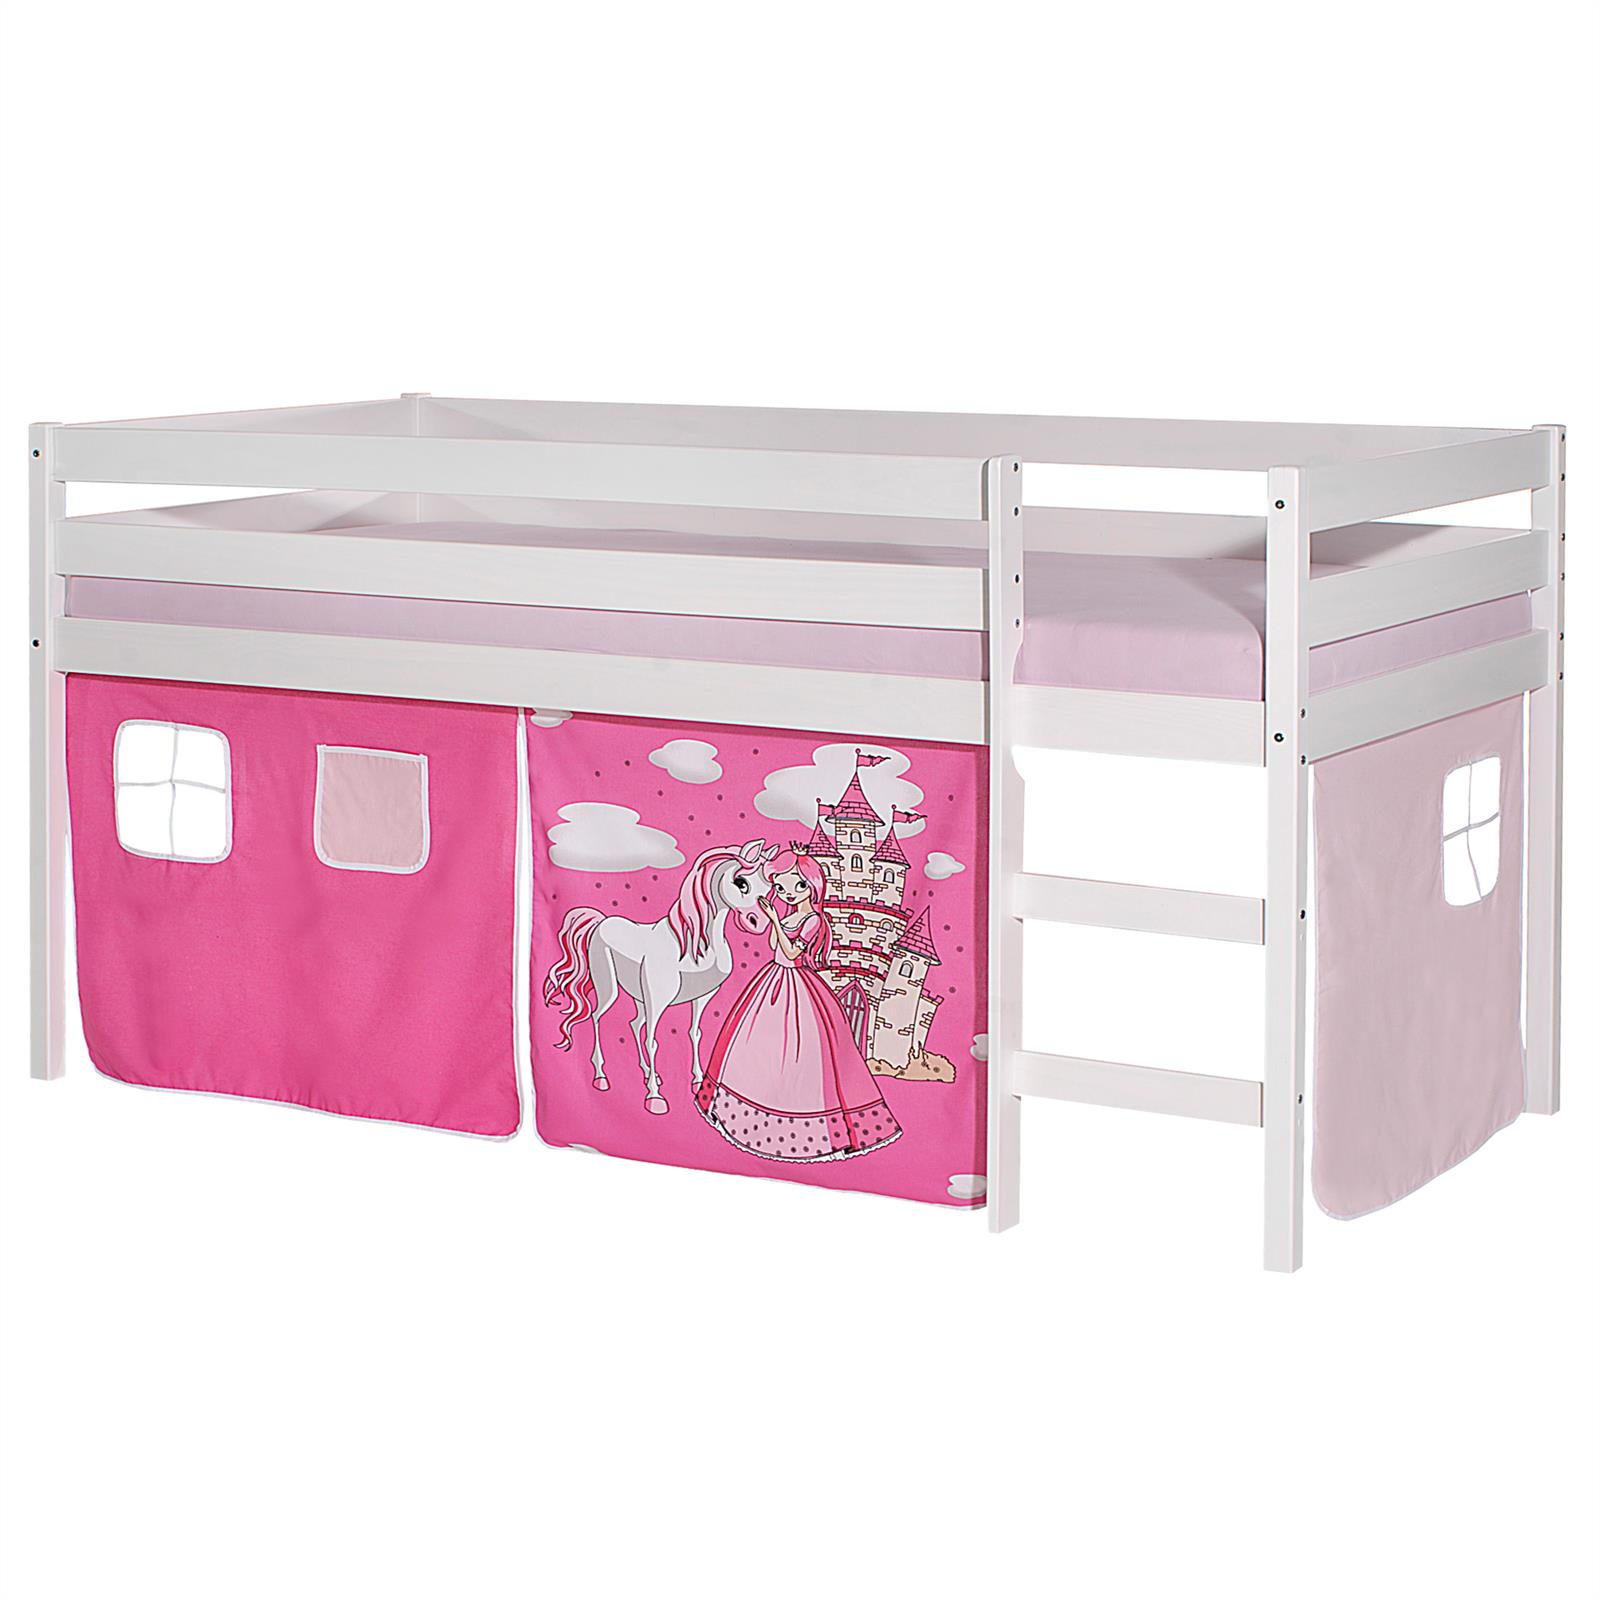 hochbett erik wei mit vorhang prinzessin pink rosa. Black Bedroom Furniture Sets. Home Design Ideas